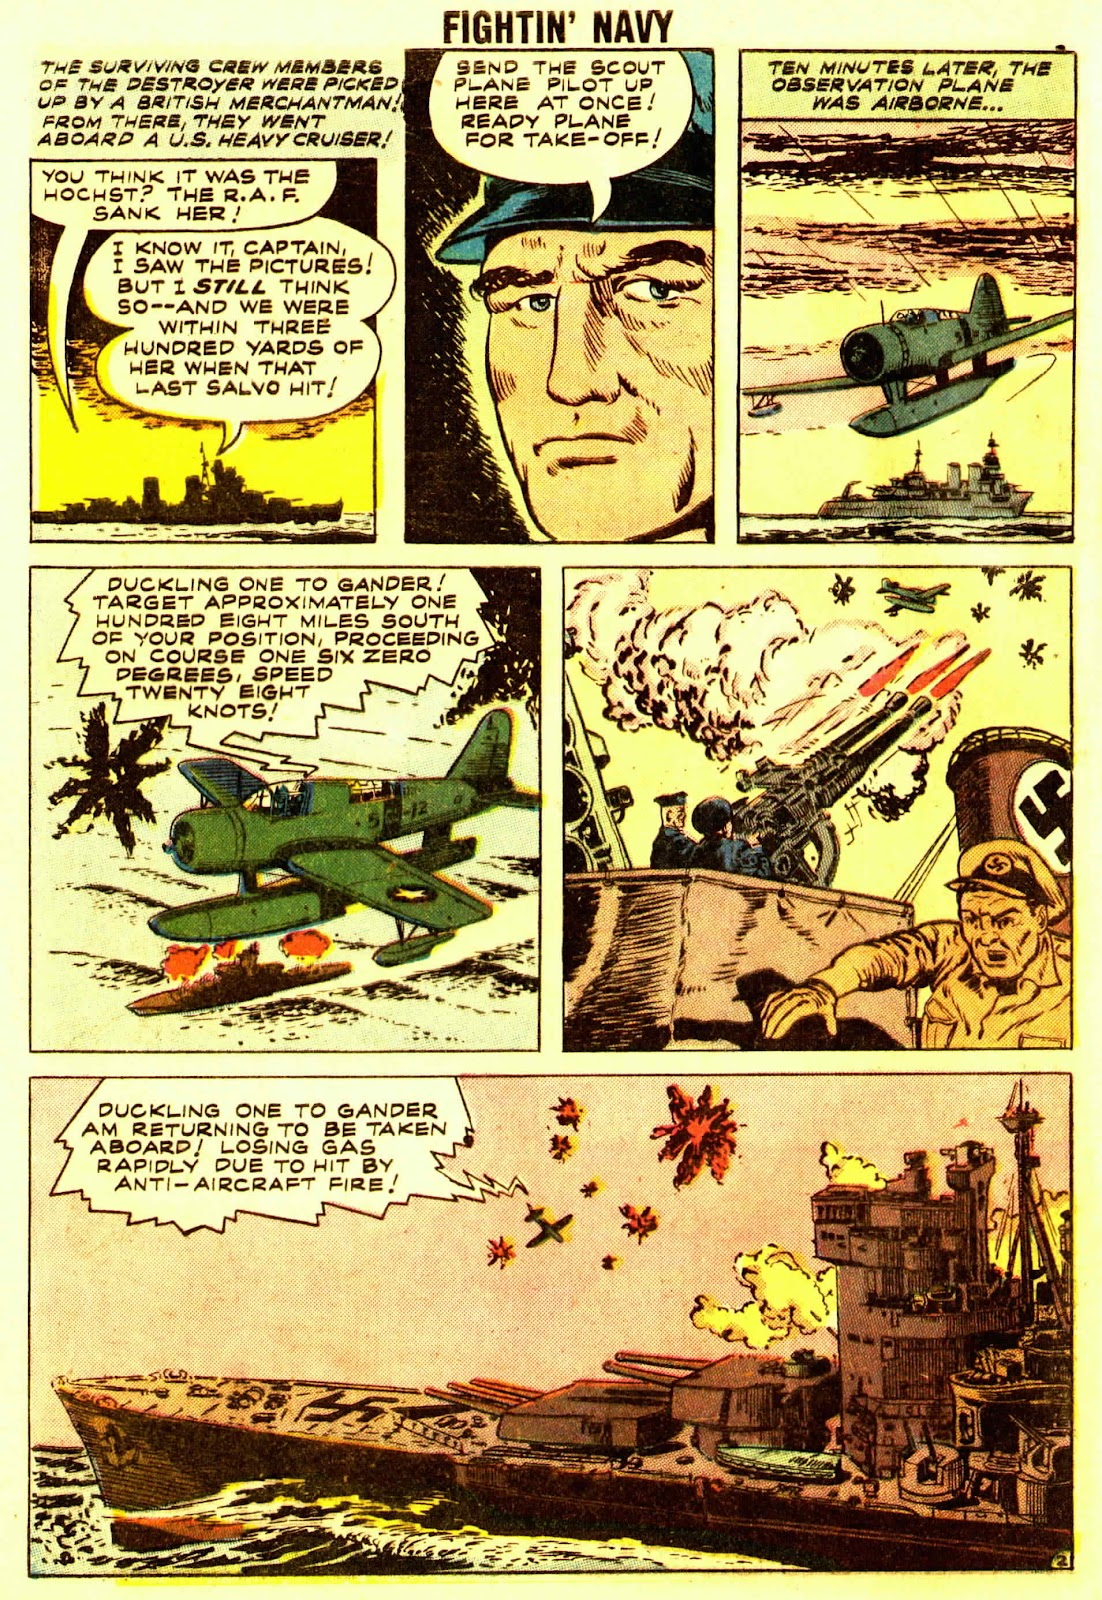 Read online Fightin' Navy comic -  Issue #83 - 4